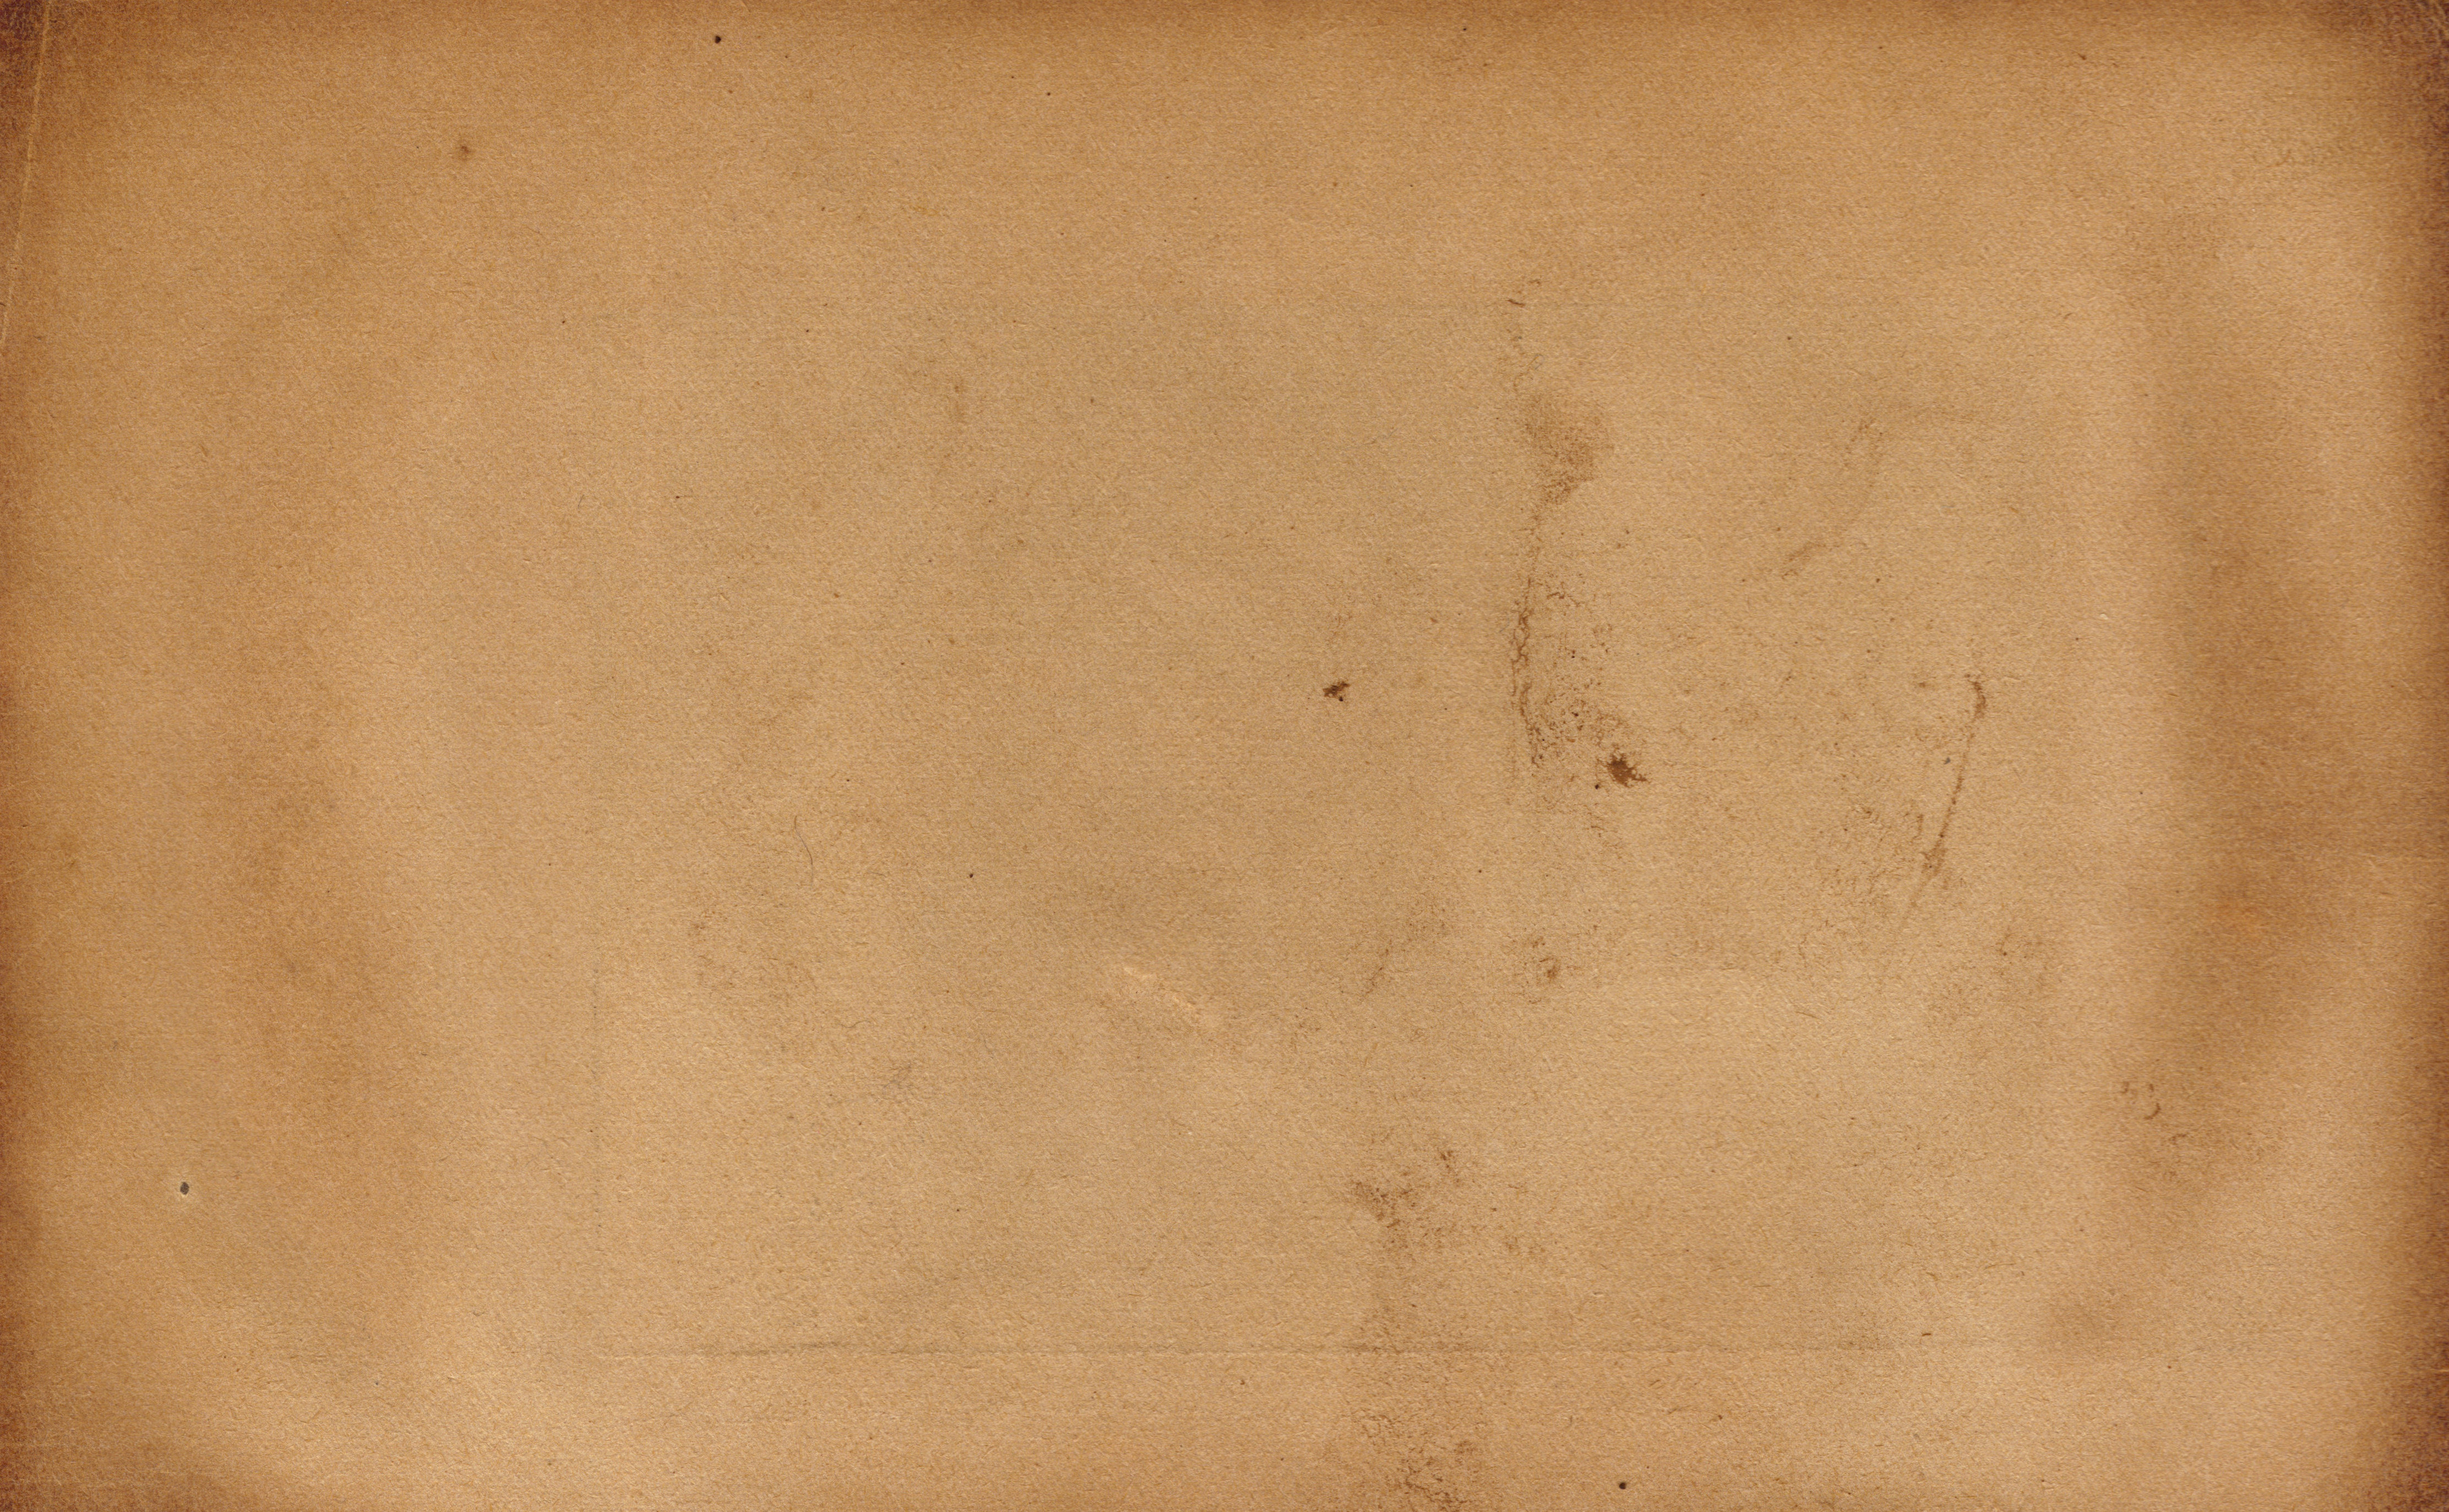 coffee stain textures  jpg